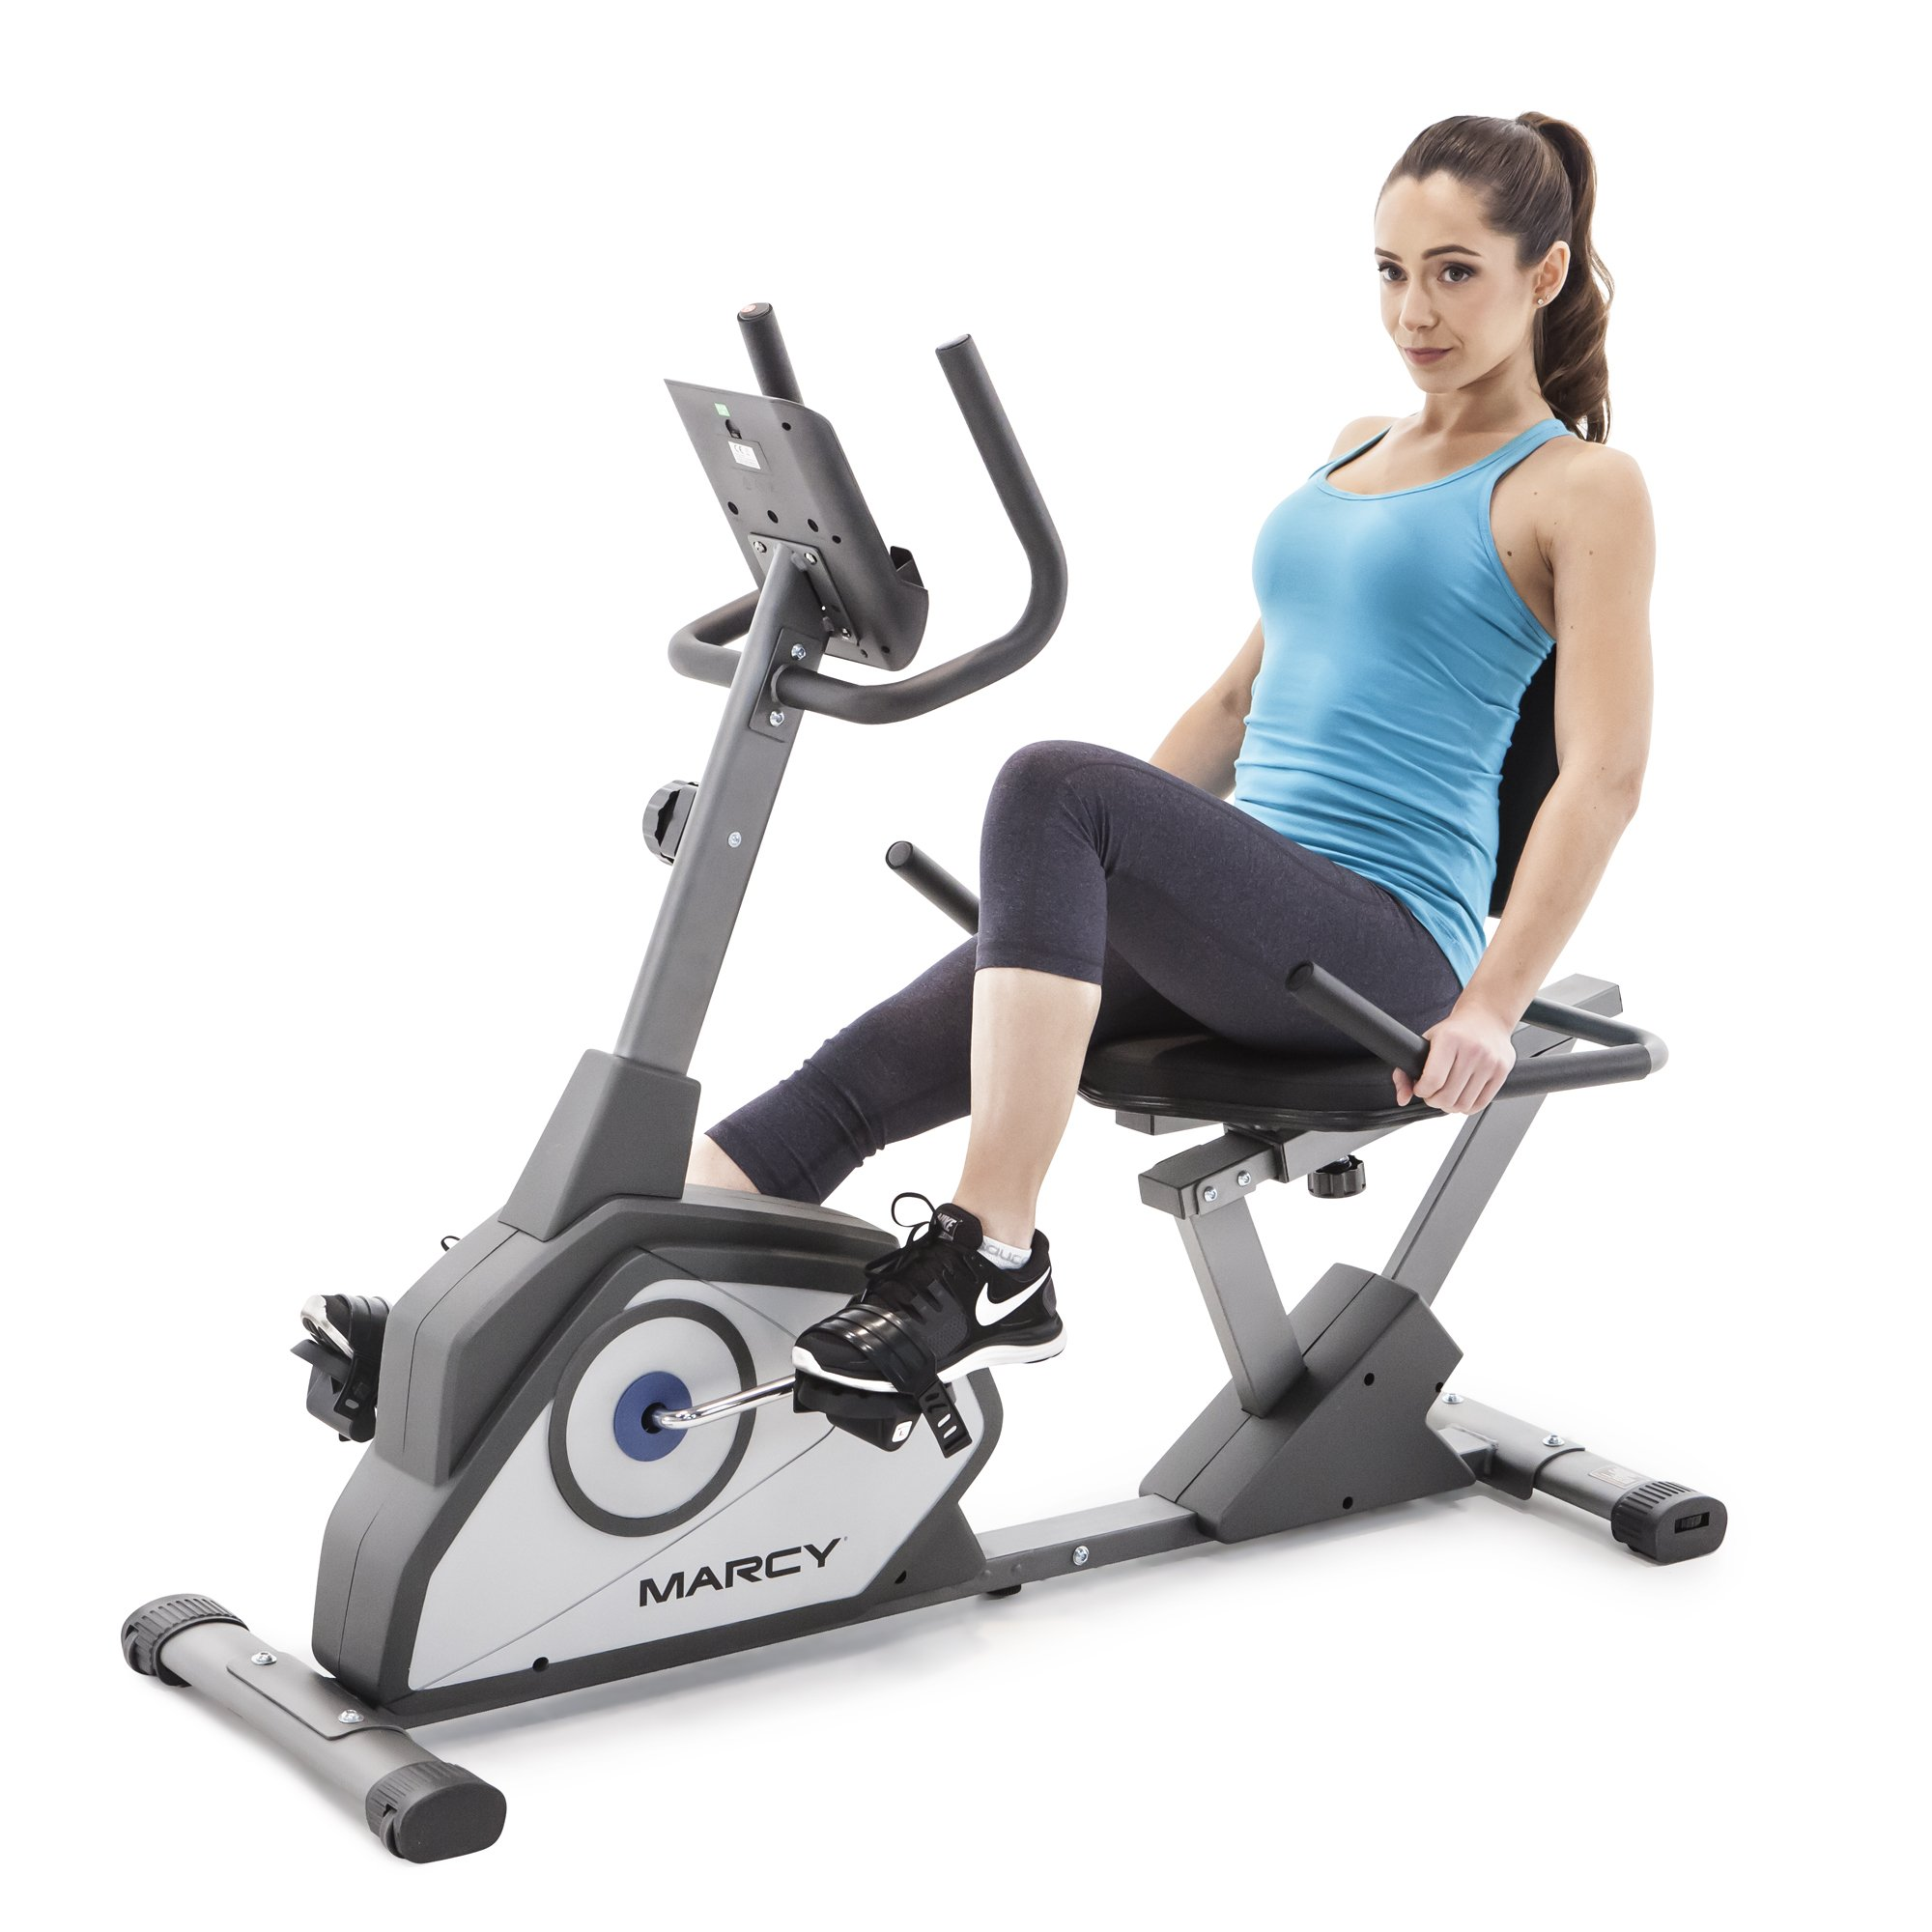 Marcy Magnetic Recumbent Exercise Bike with 8 Resistance Levels NS-40502R by Marcy (Image #1)